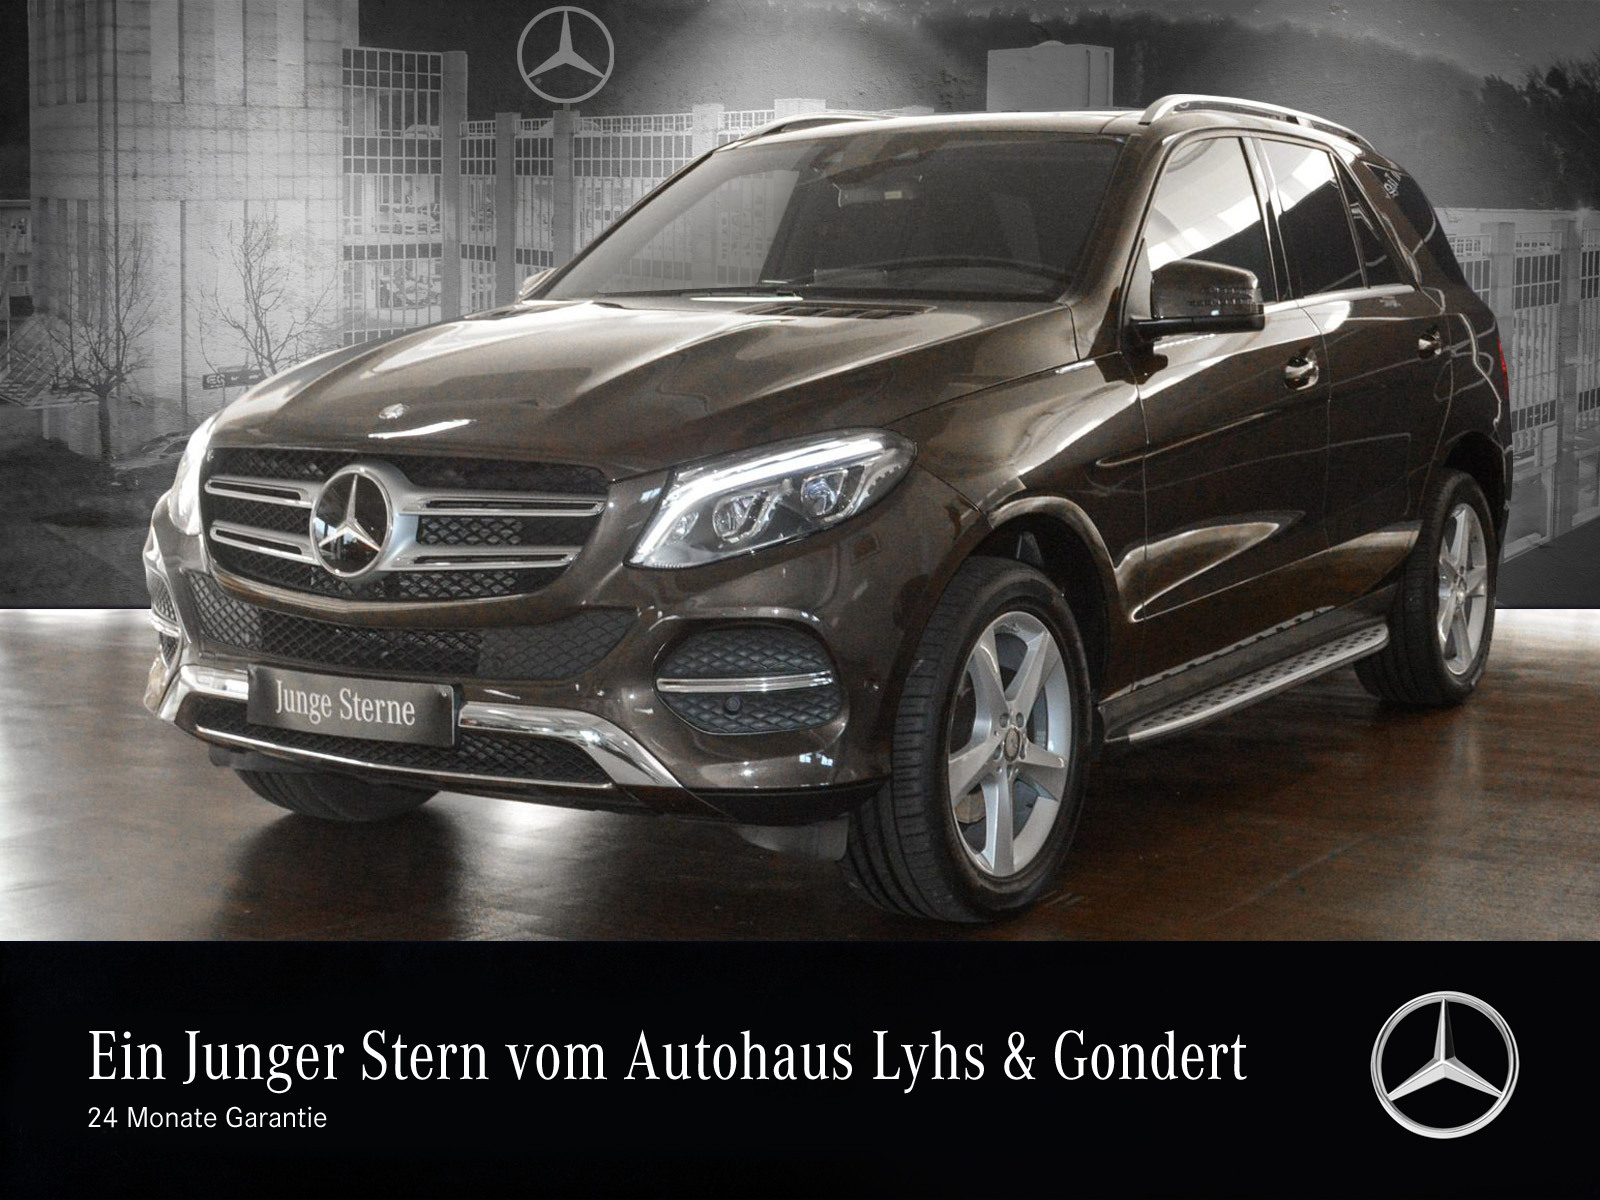 Mercedes-Benz GLE 250 d 4M Comand Distronic Pano.-Dach LED AHK, Jahr 2016, Diesel